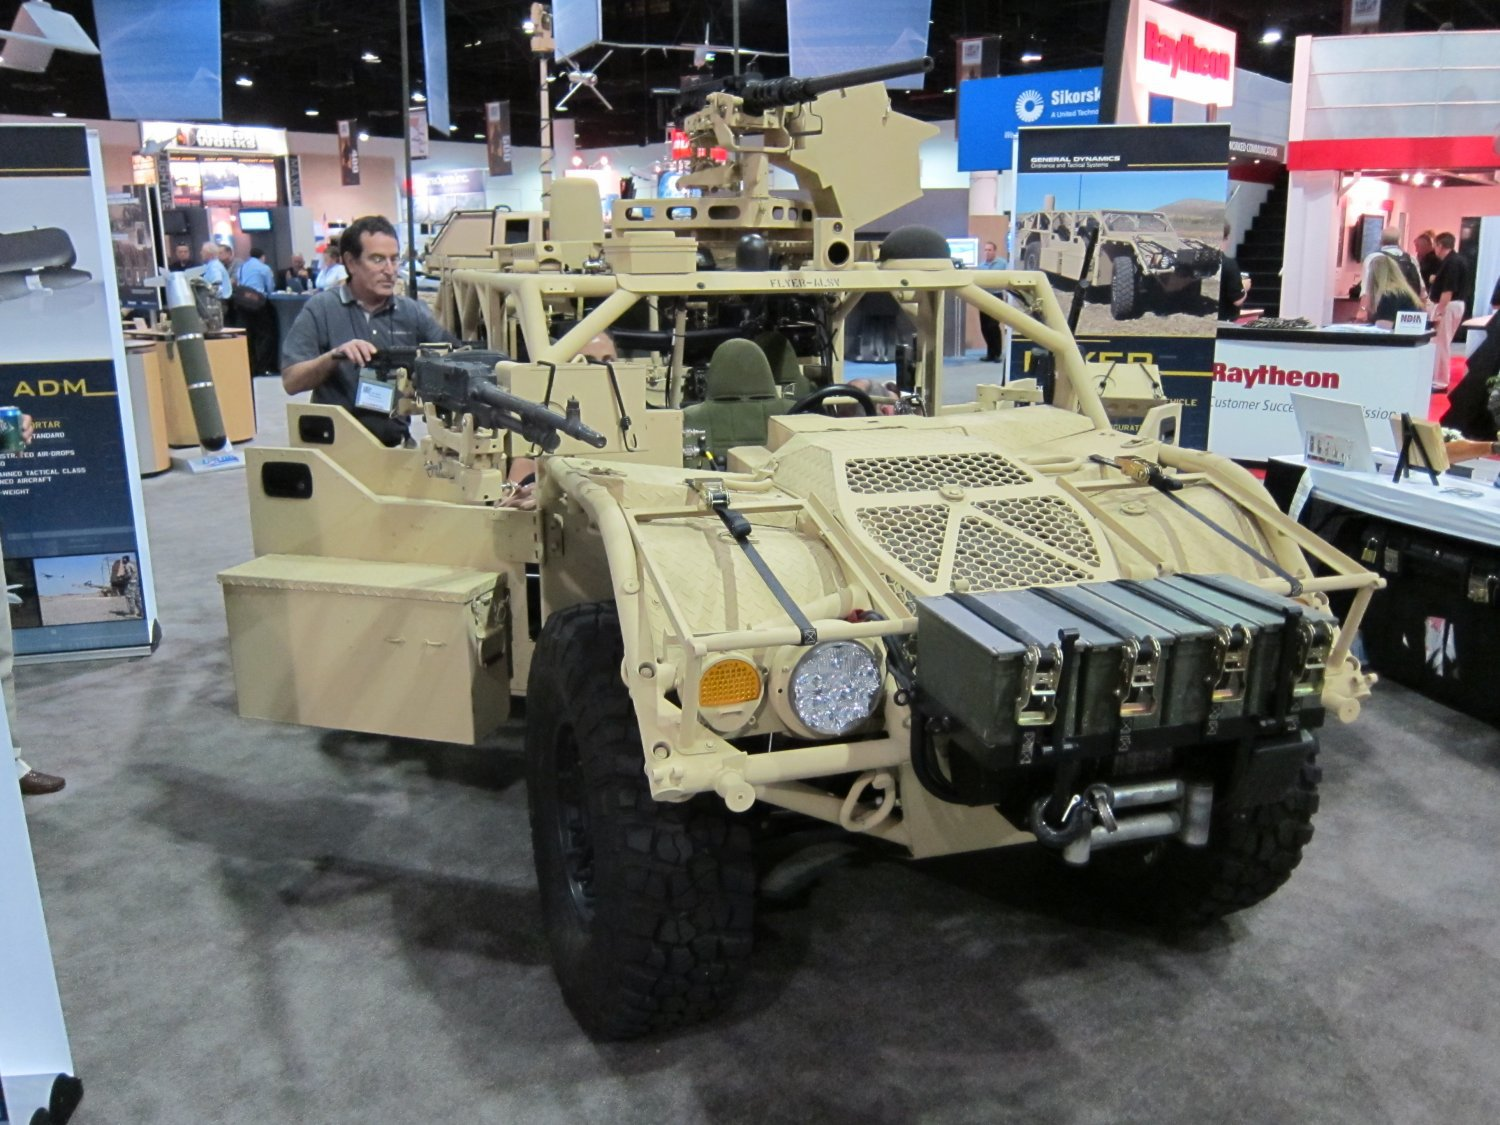 Flyer Defense/General Dynamics GDOTS Flyer Advanced Light Strike Vehicle (ALSV) All-Terrain Fast-Attack Vehicle with Optional Ceradyne Vehicle Armor Package: Modular Armored/Unarmored Tactical Vehicle/Combat Vehicle for Military Special Operations Forces (SOF) Missions